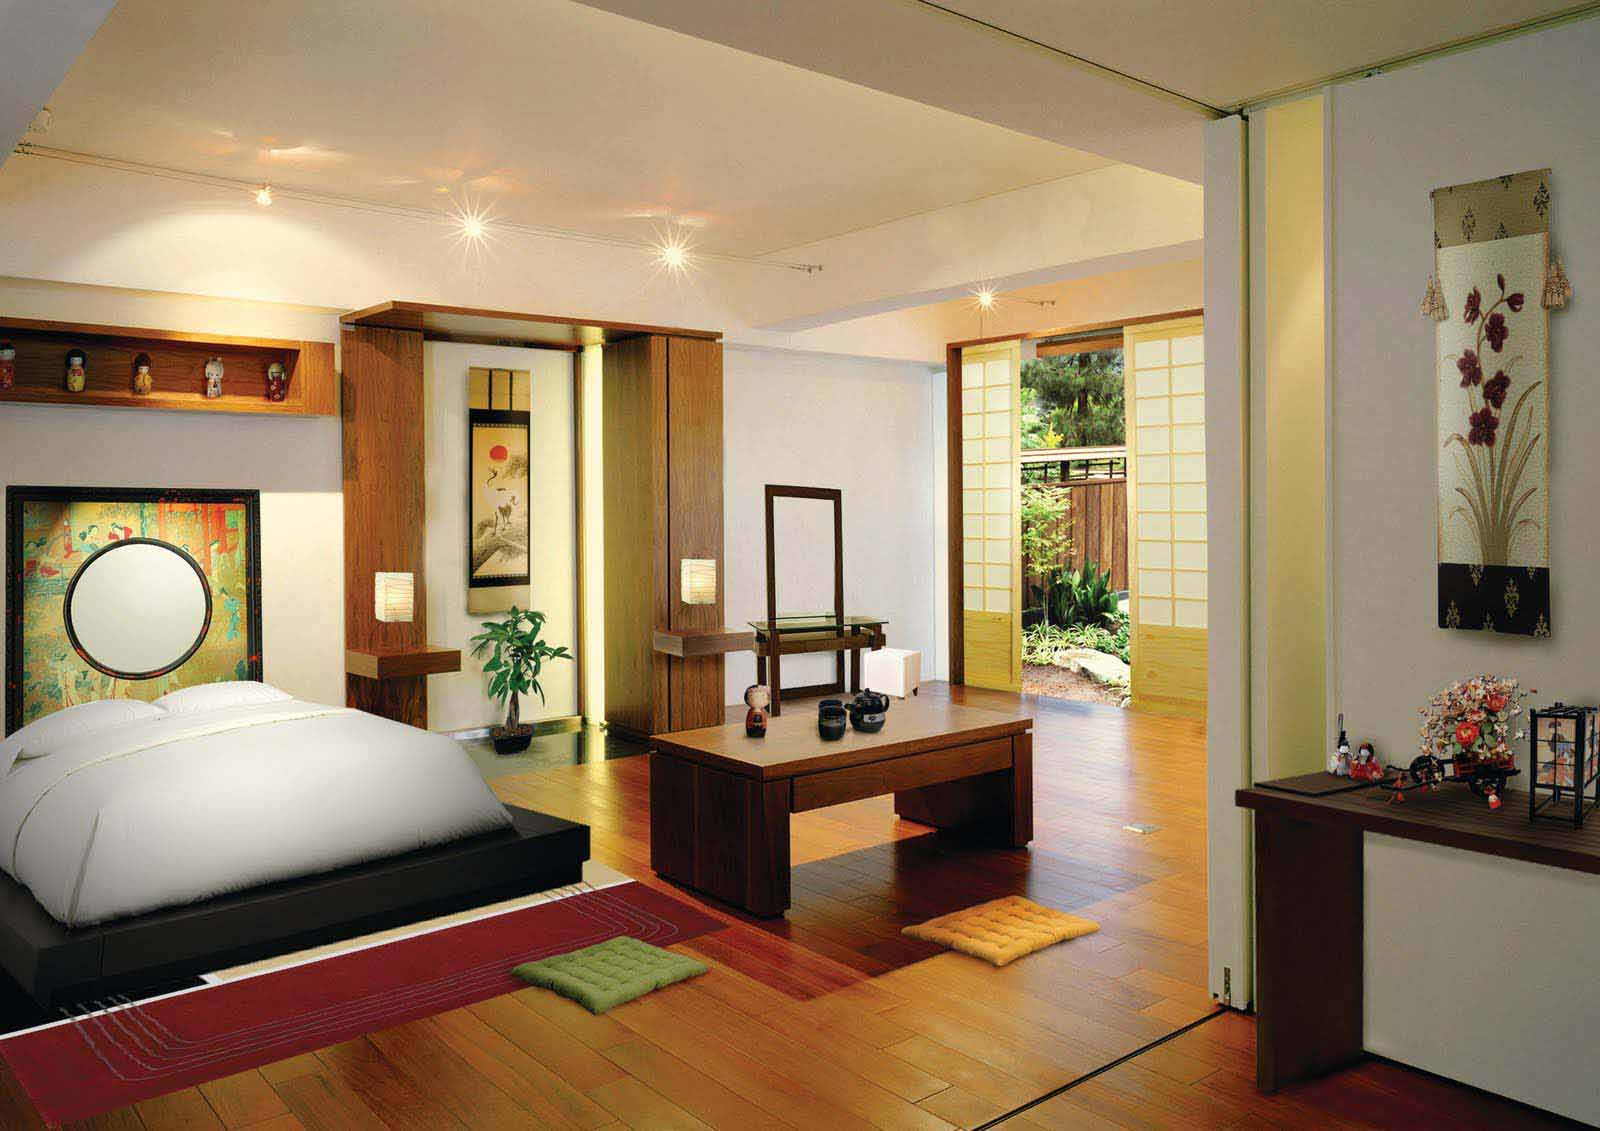 japanese home decorating ideas small master bedroom ideas 11608